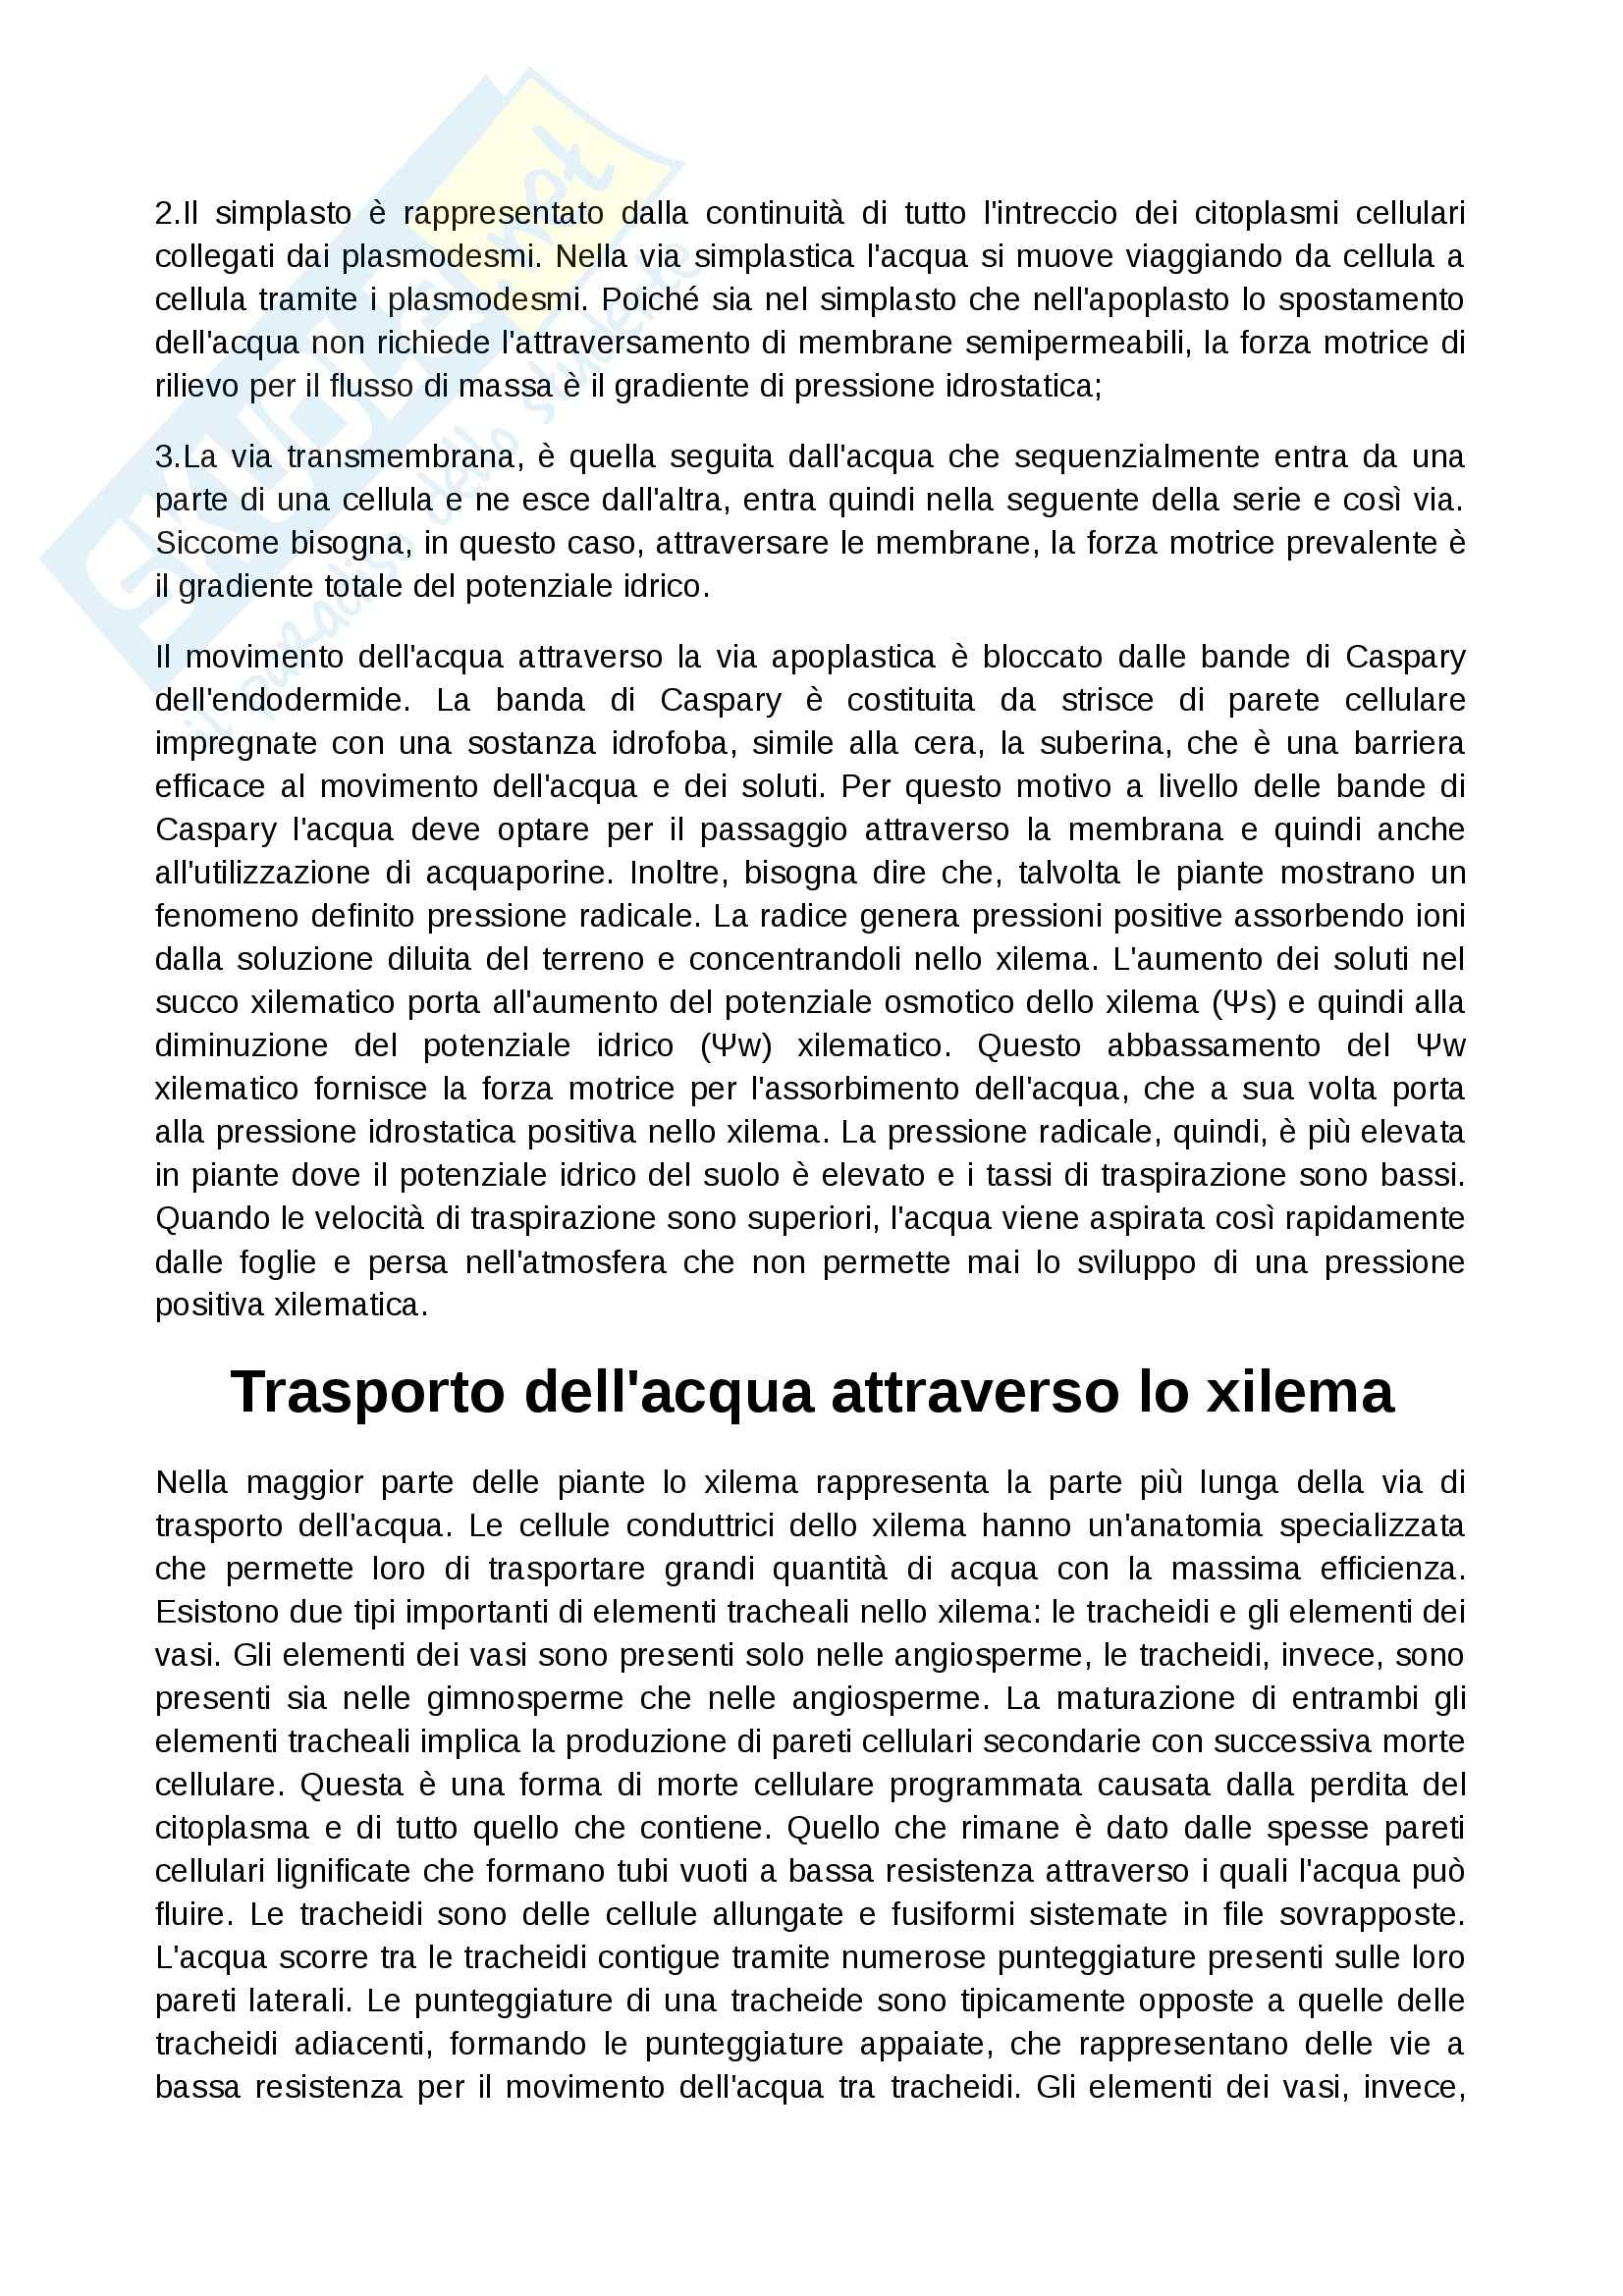 Fisiologia vegetale - Appunti Pag. 6